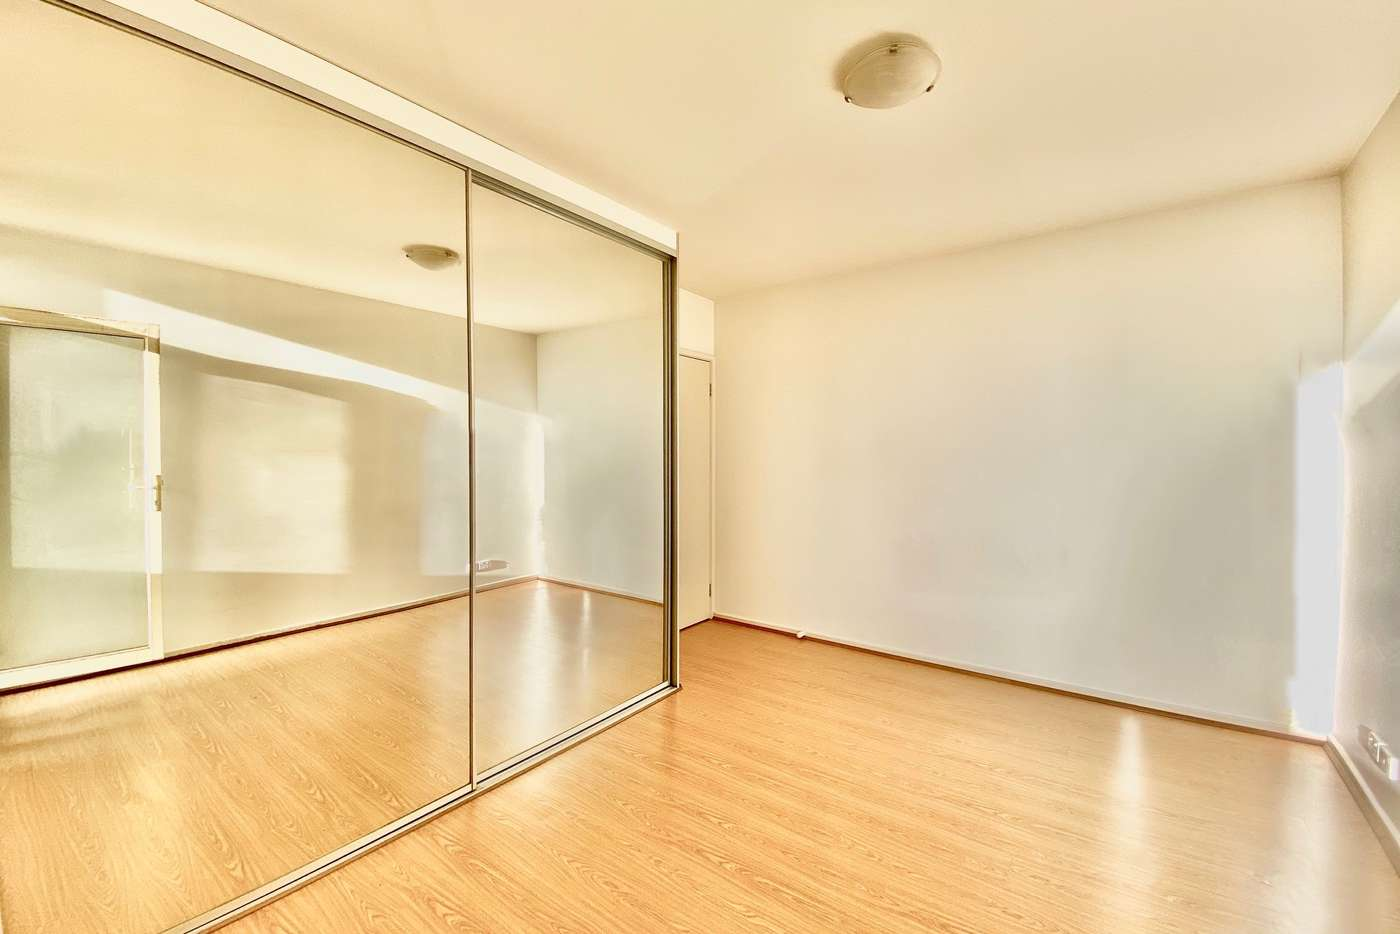 Fifth view of Homely apartment listing, 27/337-341 Sydney Road, Brunswick VIC 3056